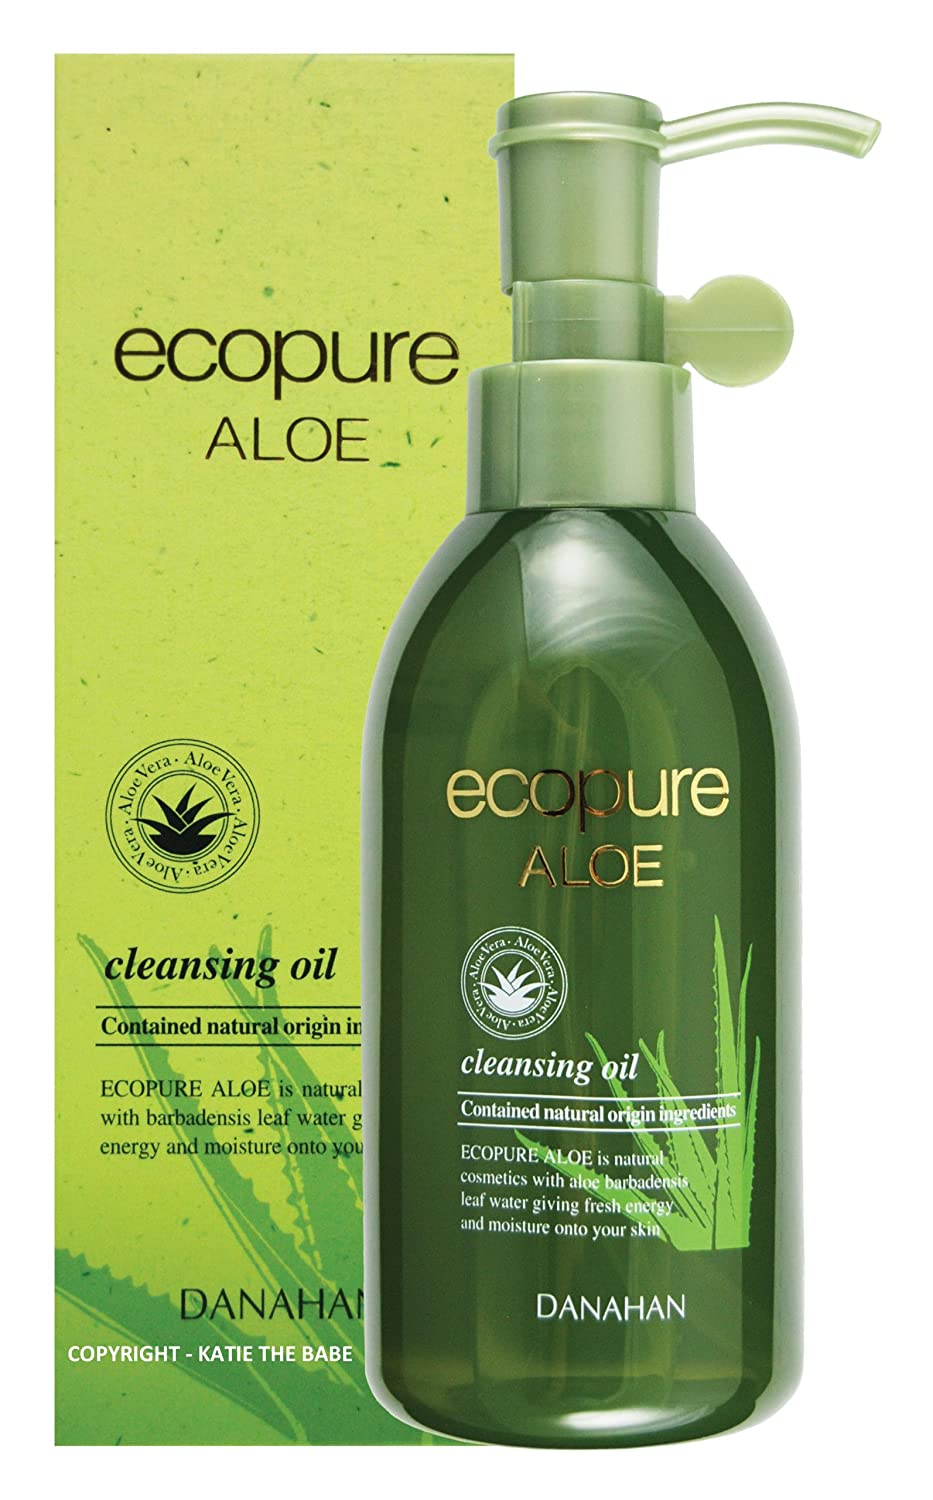 ECOPURE ALOE High material CLEANSING 200ml OIL Many popular brands